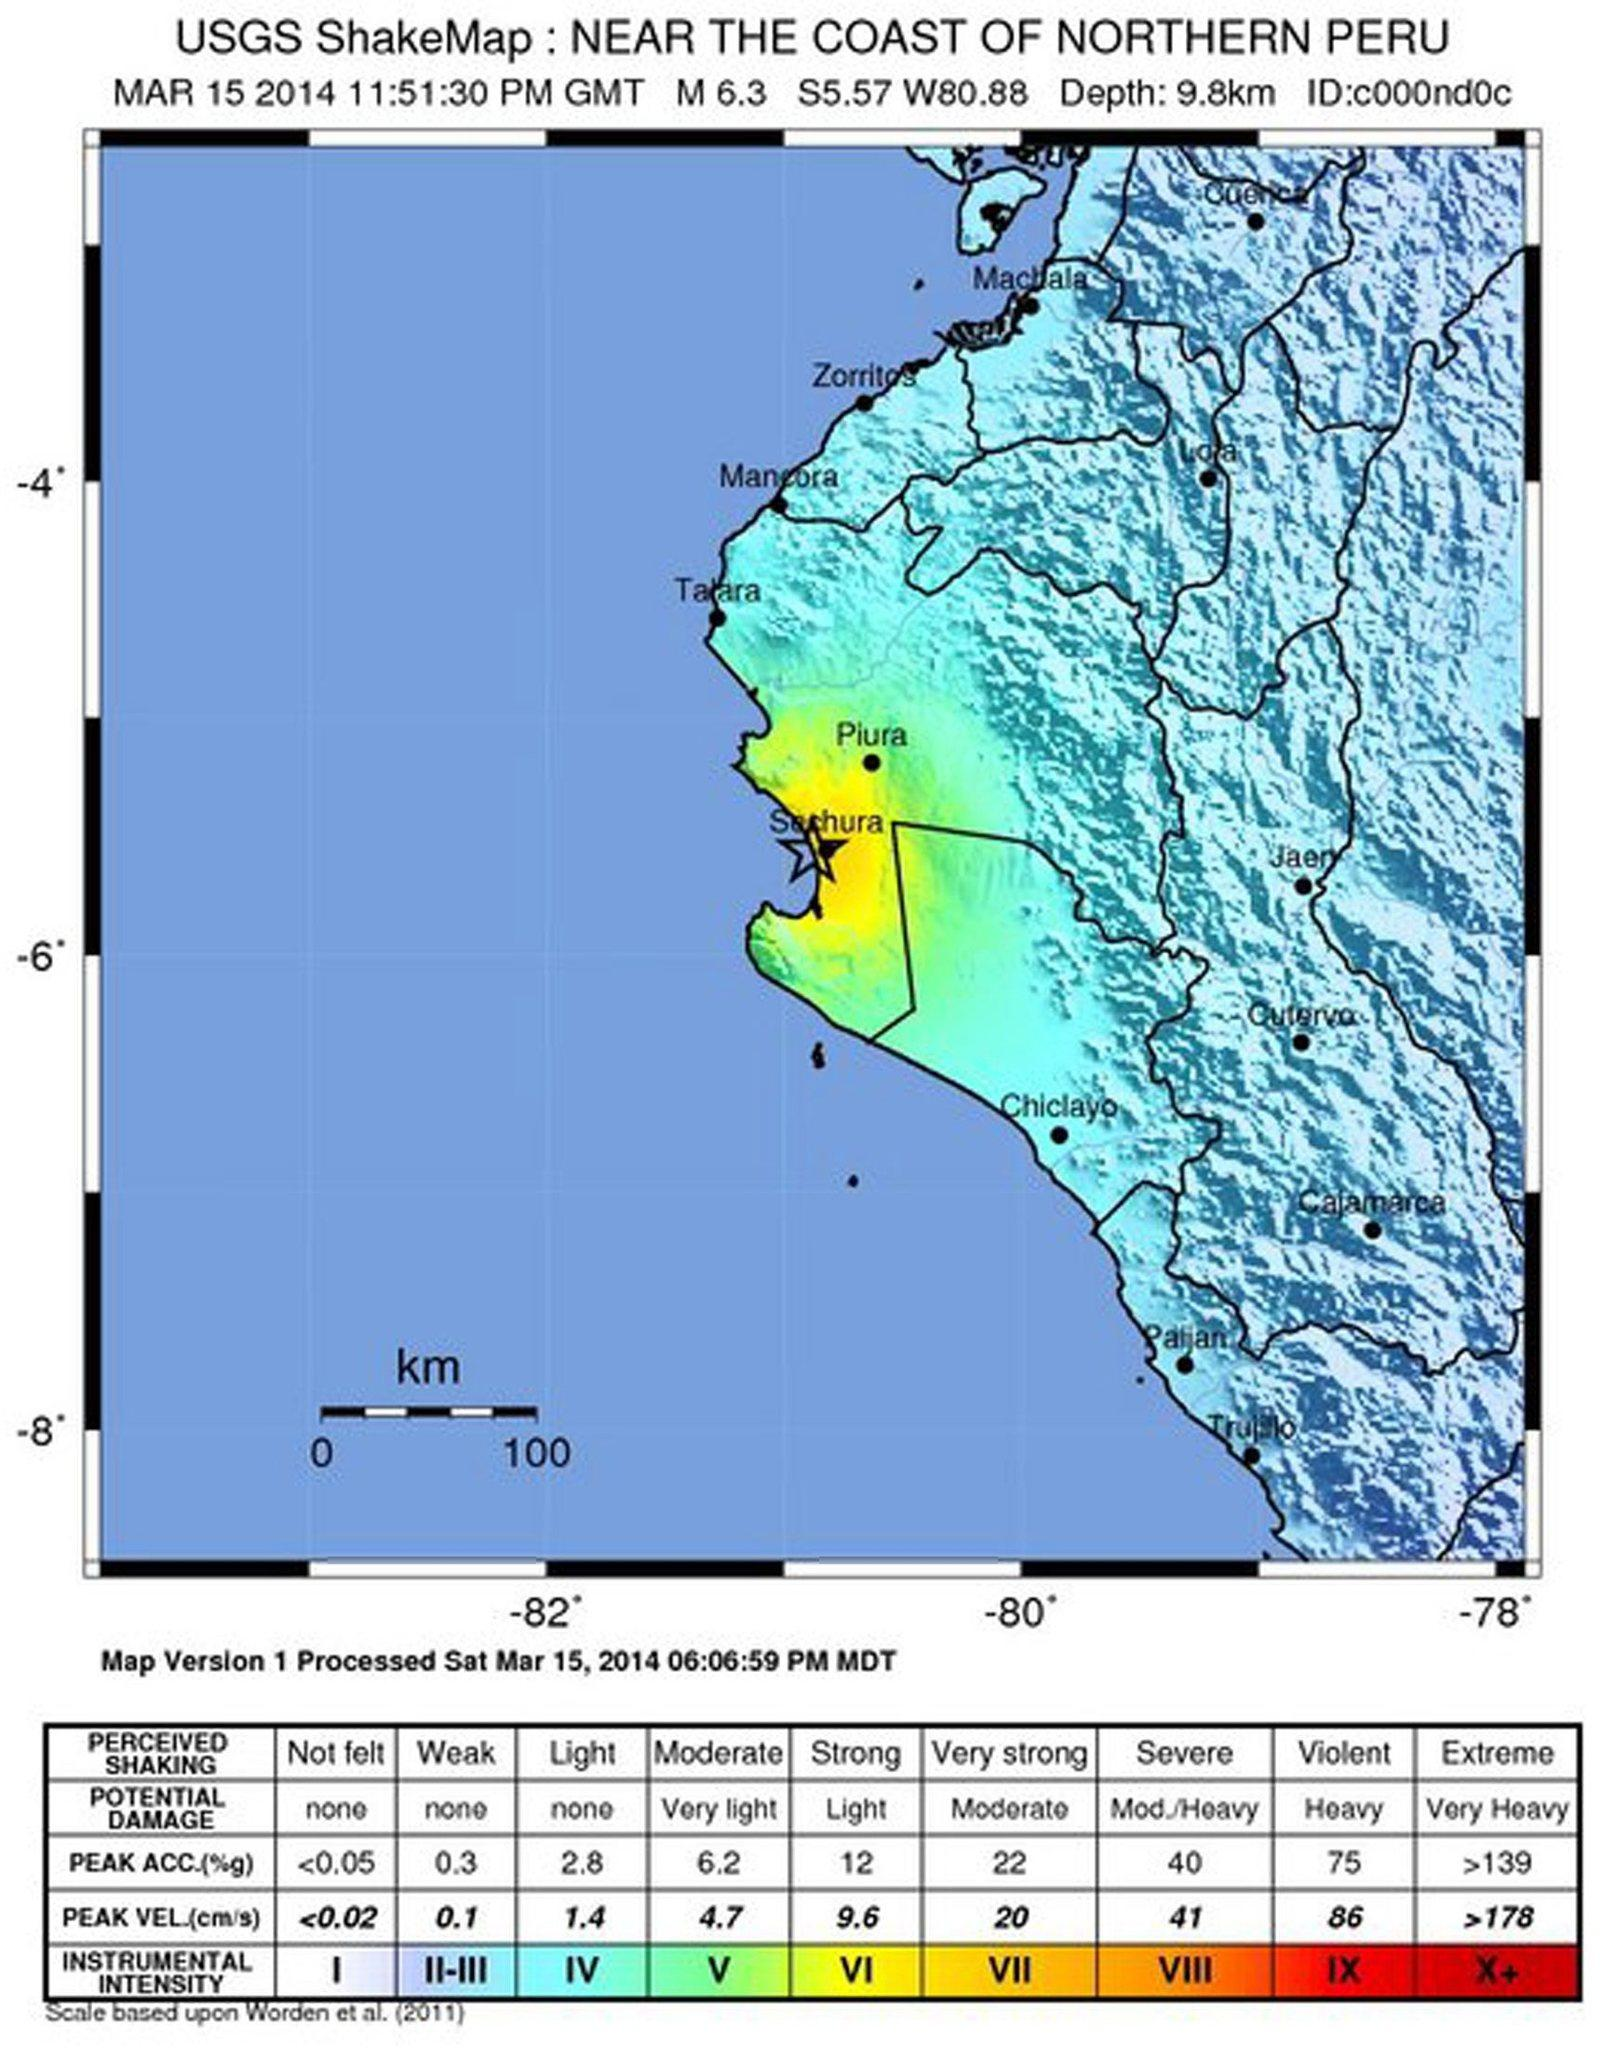 A shakemap of the location and intensity of an earthquake near the coast of Northern Peru on March 15 released by the U.S. Geological Survey. A 6.3 to 6.5 magnitude tremor at a depth of 9.8 km struck near the town of Sechura, Peru.